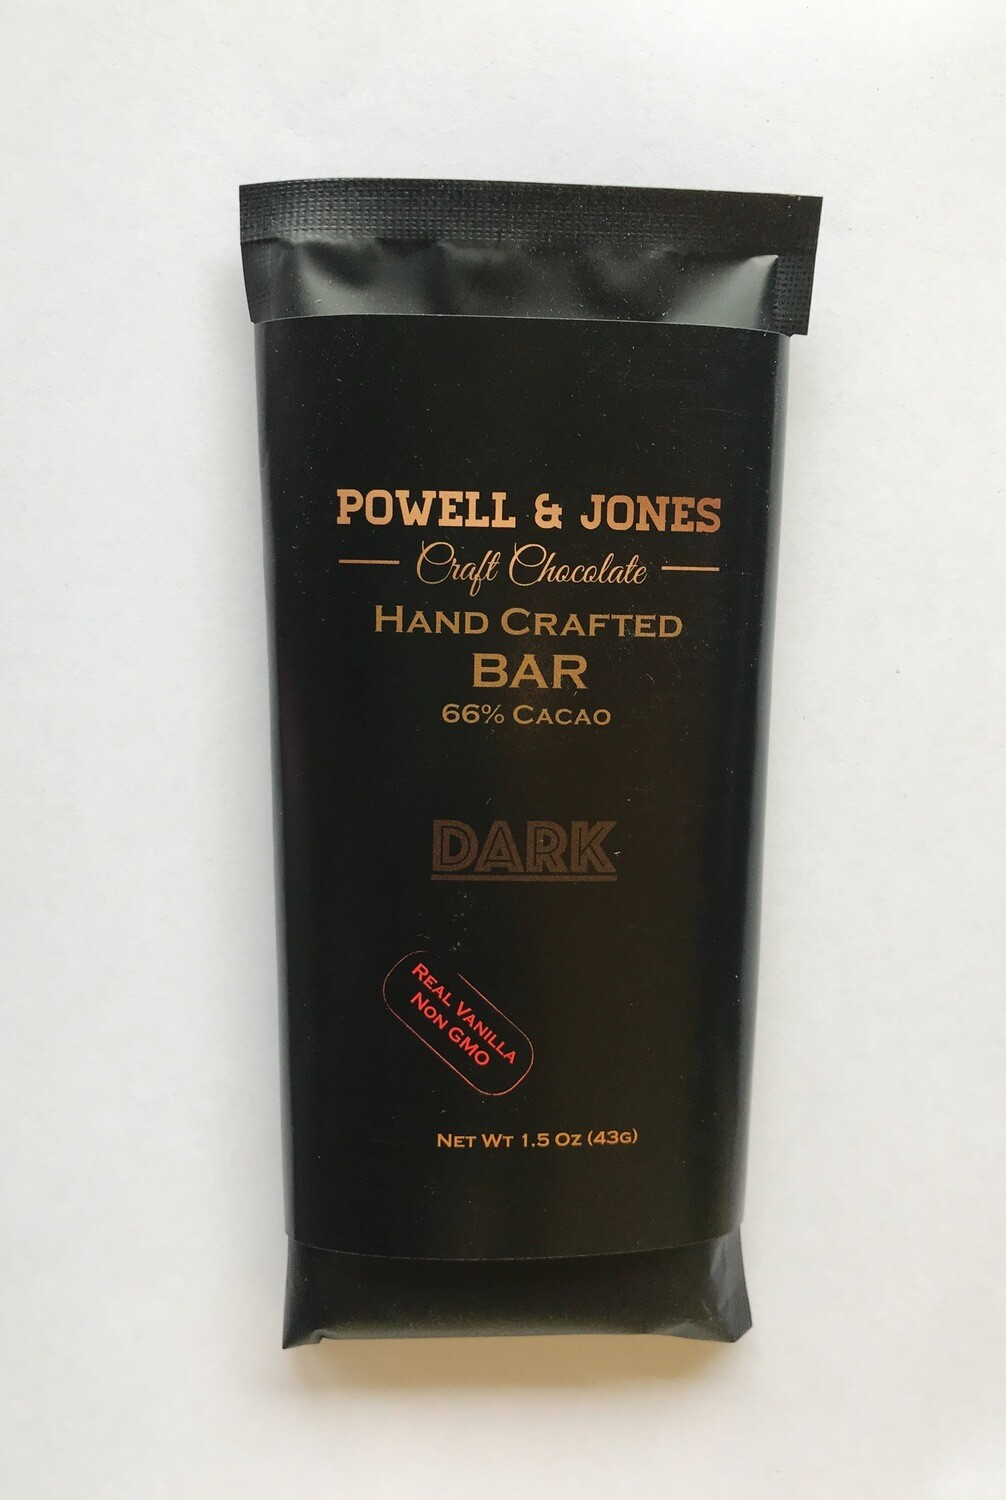 Powell and Jones Dark Chocolate Bar